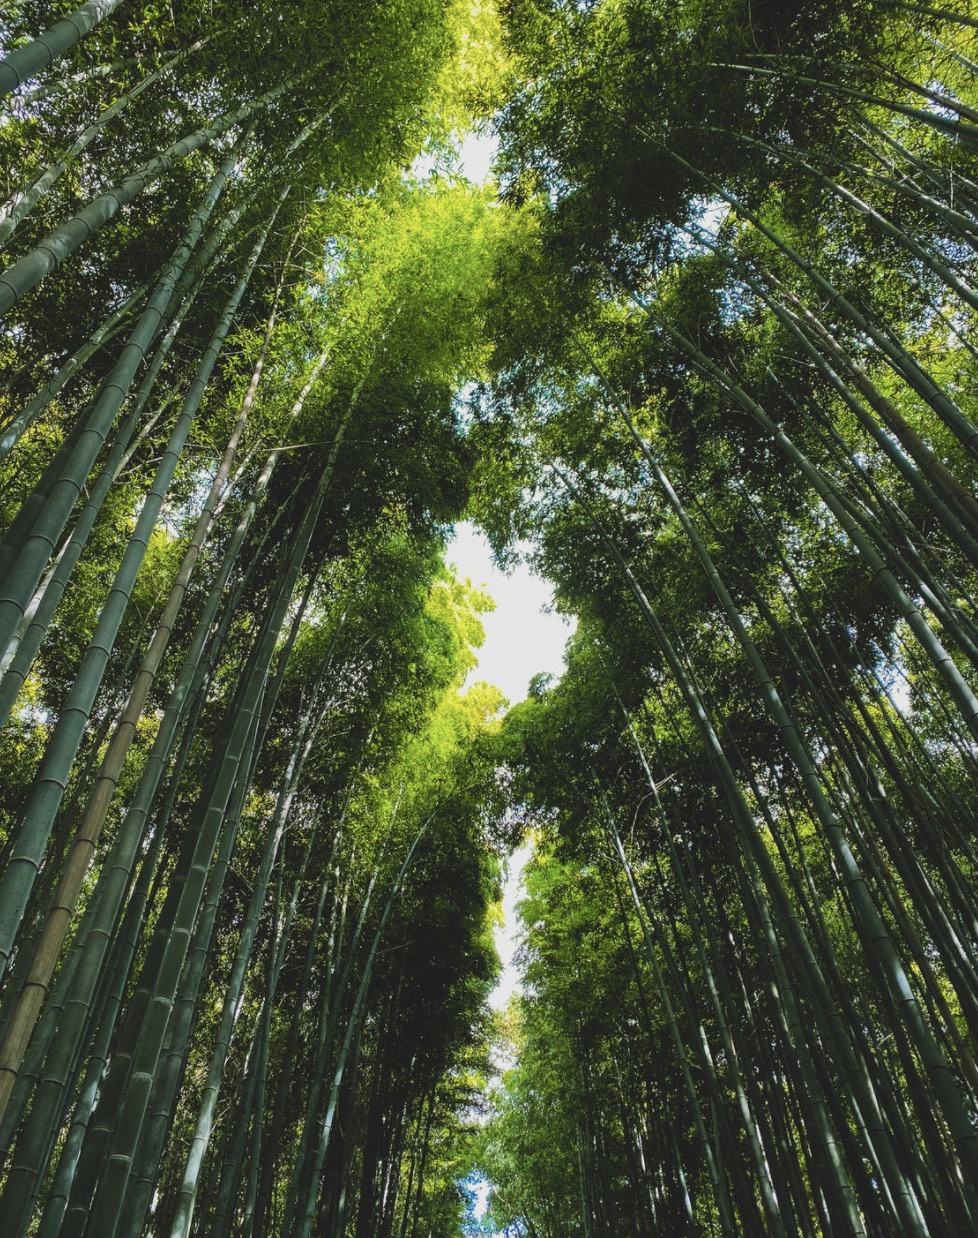 Bamboo plants can grow really fast.